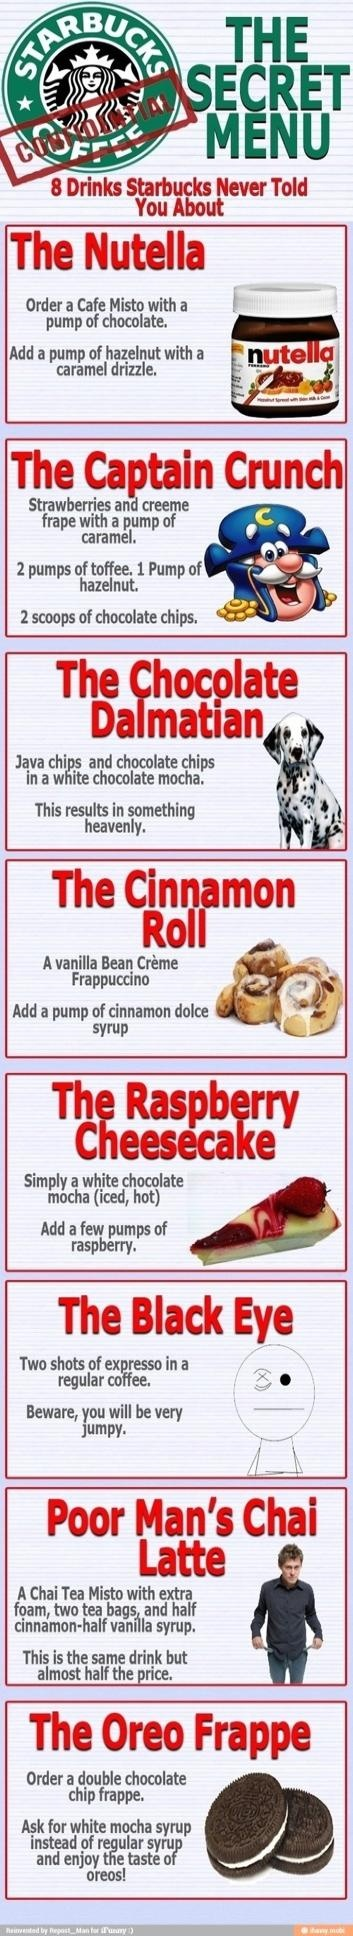 *My family and I are making our through this list. The cinnamon roll is a keeper even as white hot chocolate as the base. ~Secret Starbucks recipe #firstpin